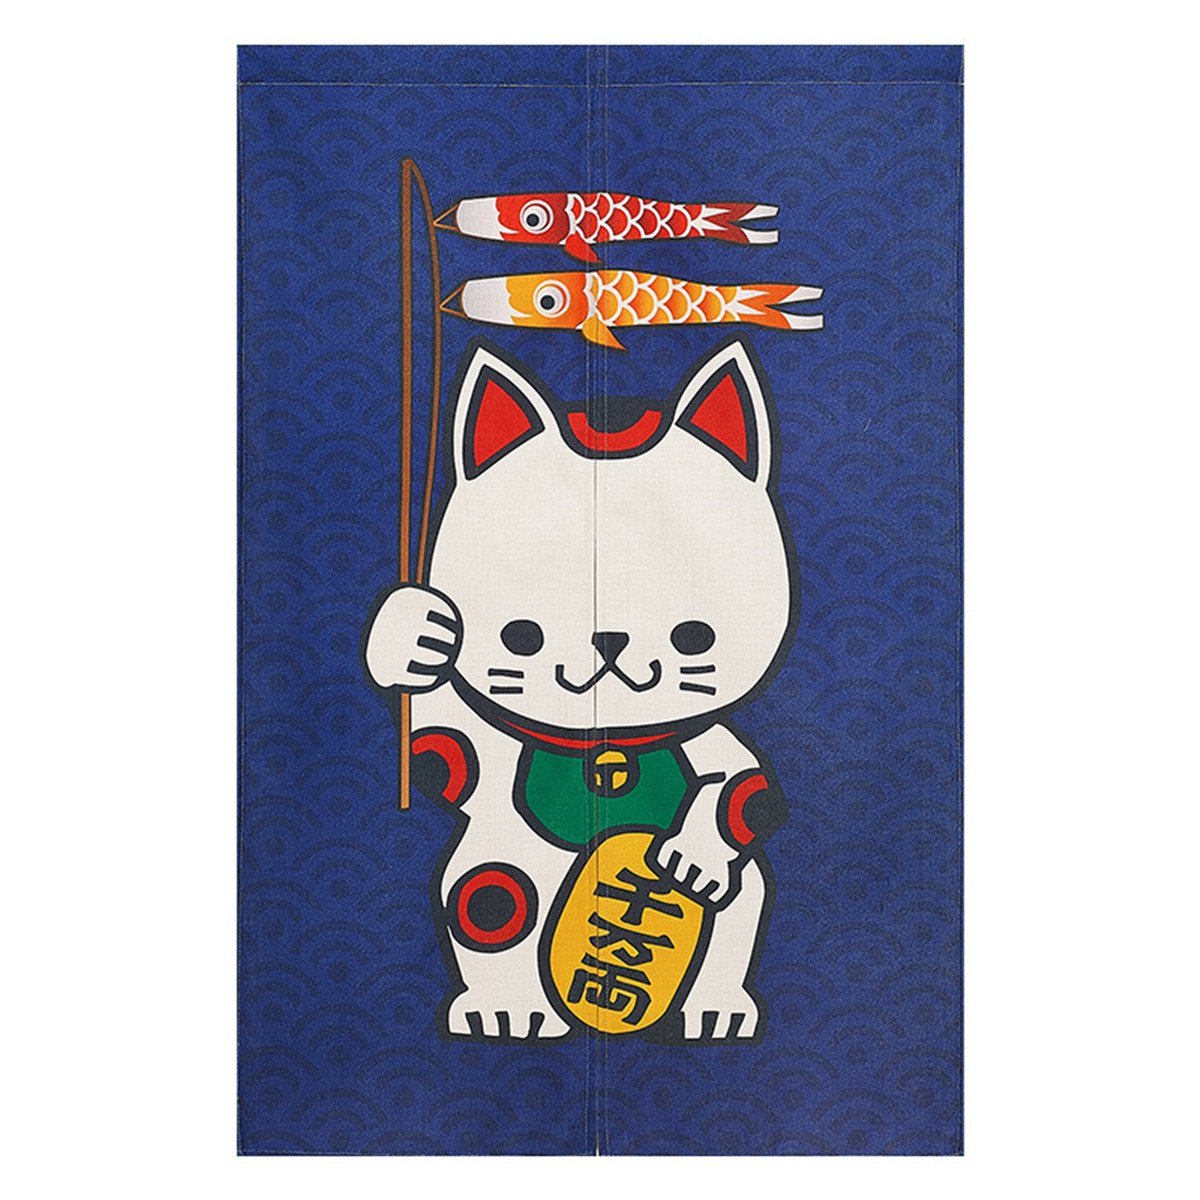 BAIHT HOME Cotton Linen Cute Maneki Neko Japanese Noren Doorway Curtain with Lucky and Fortune Cats Pattern Tapestry Divider Bedroom Blackout Door Curtain Panel£¬33.5'' x 47.2''